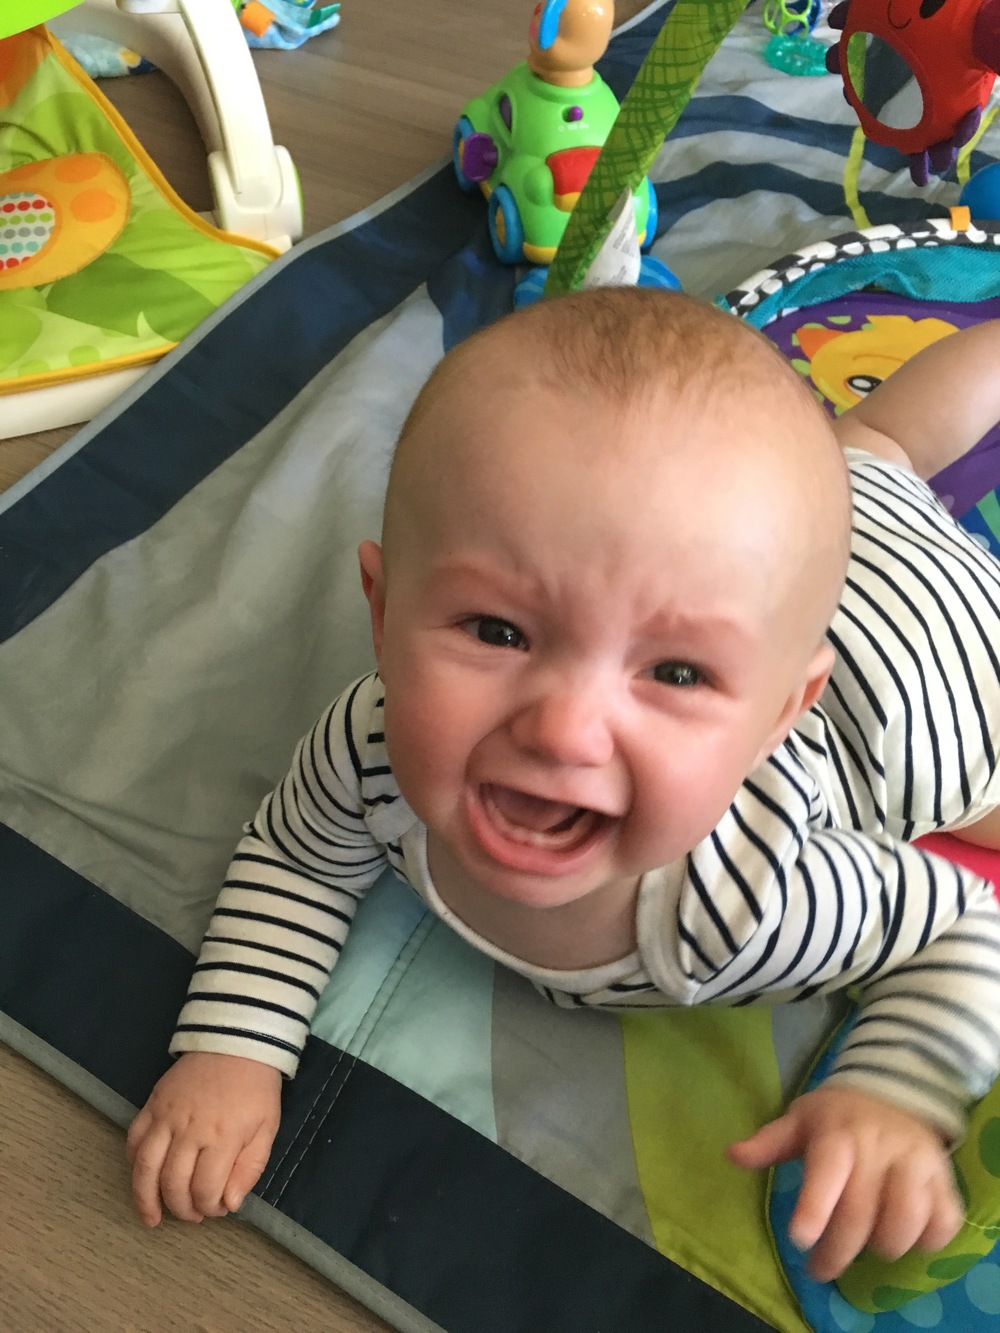 Unhappy 7 month old who does not want mama to cook!